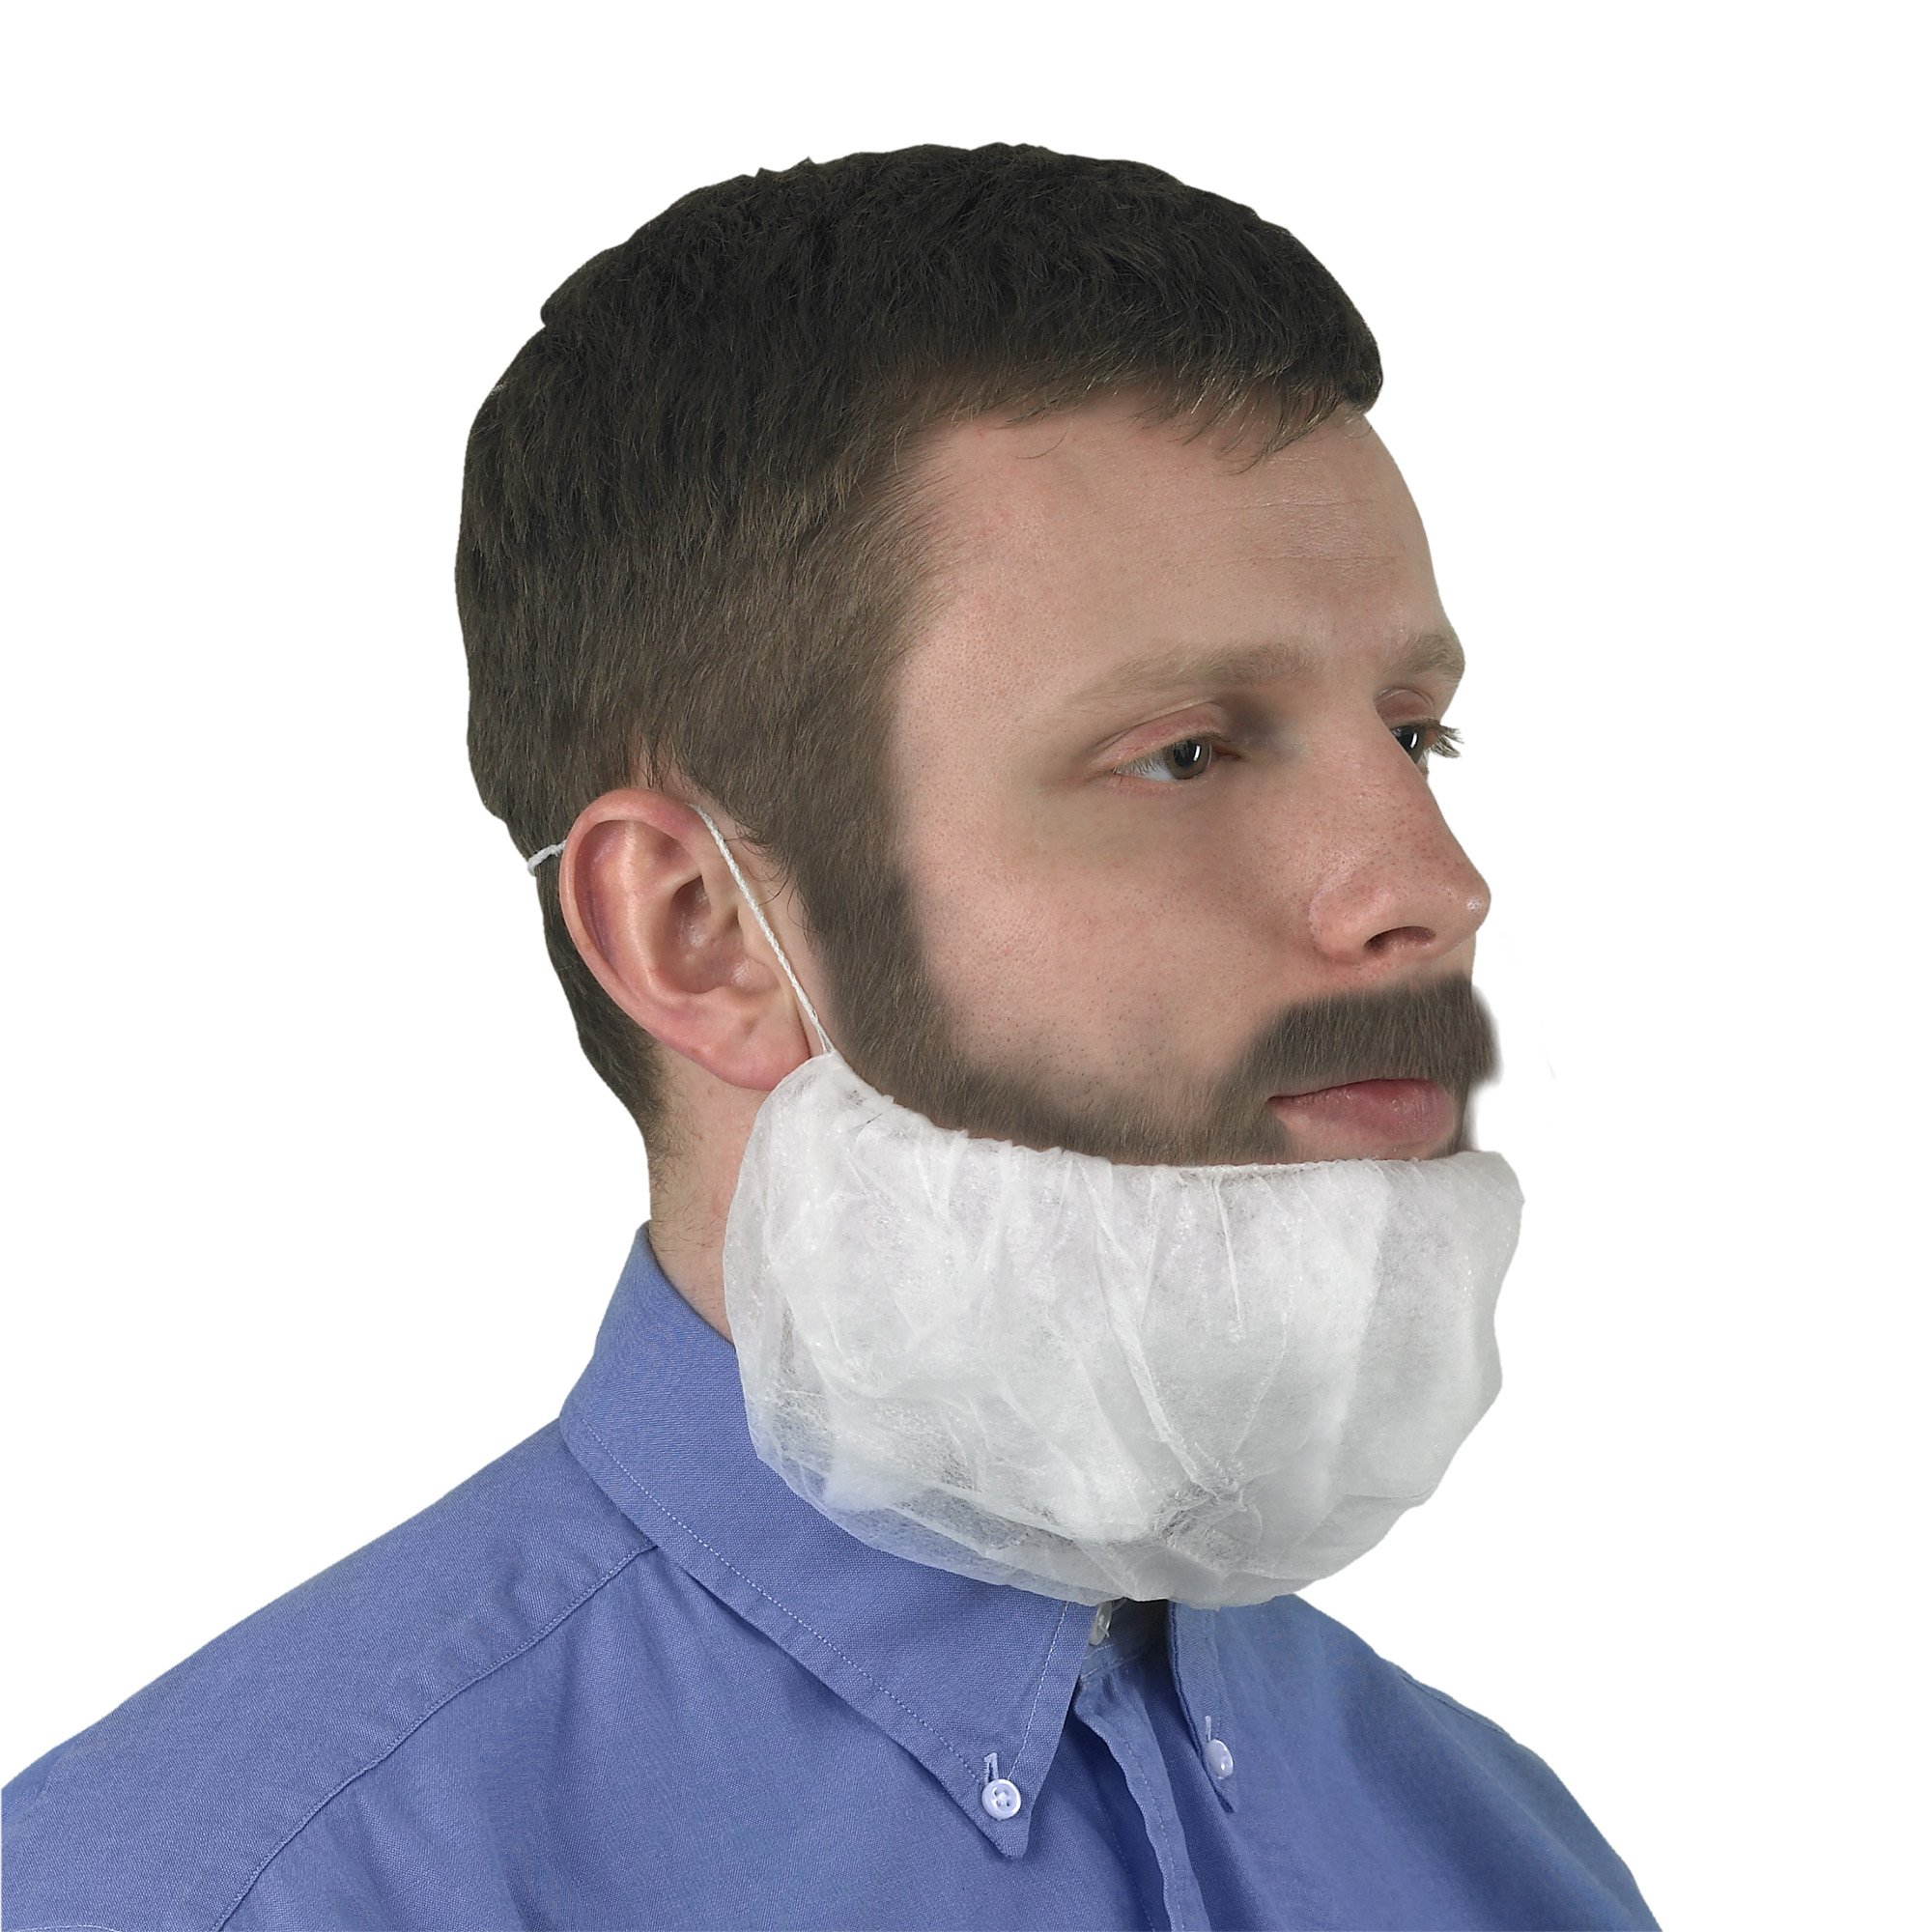 Kimberly-Clark KleenGuard A10 Polypropylene Light Duty Beard Cover (Pack of 1000)